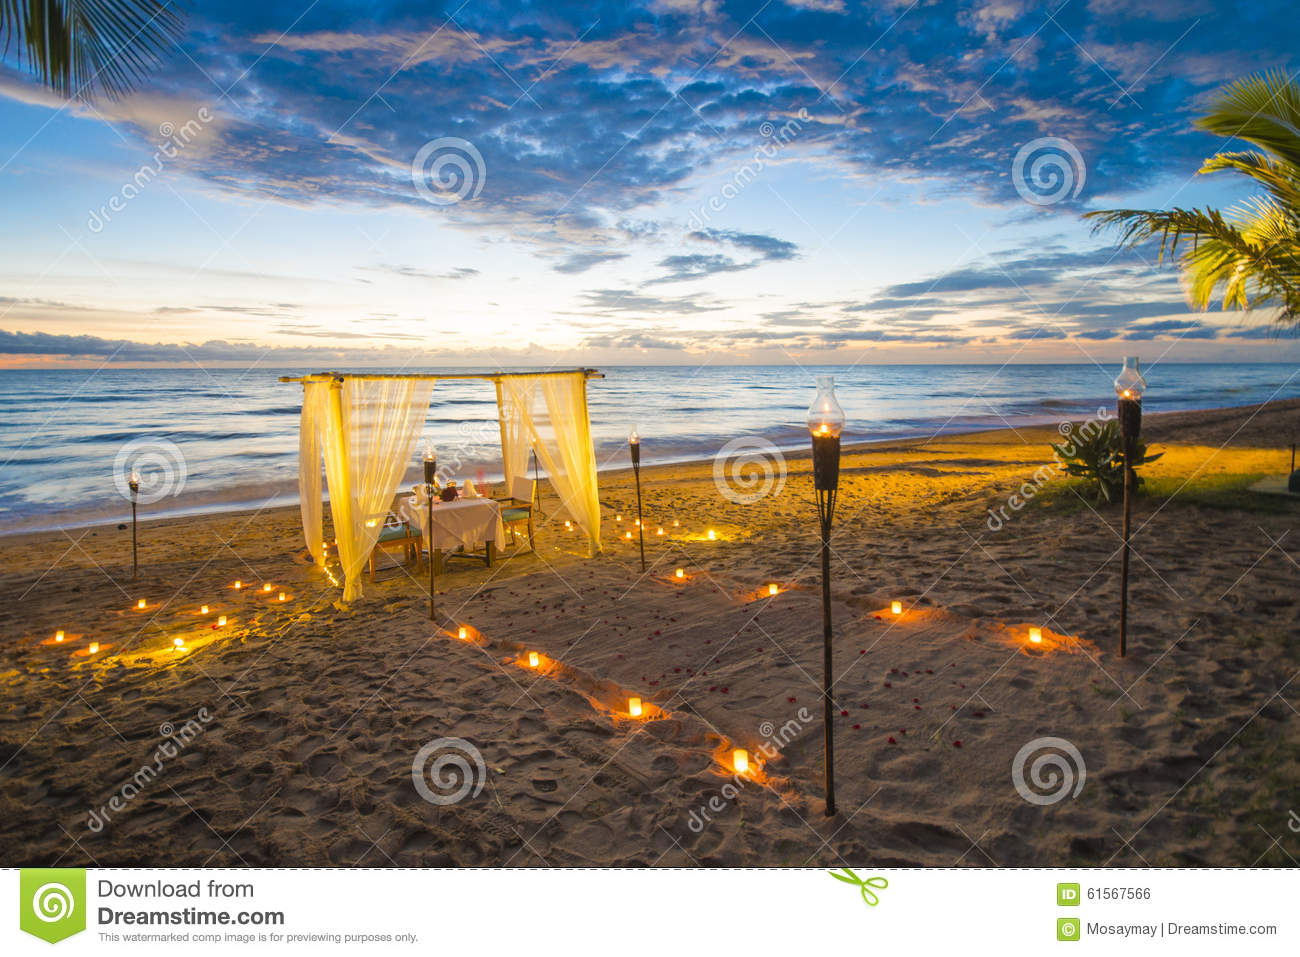 Dinner Set Up On The Beach Sunset Time Stock Photo Image Of Food Dining 61567566